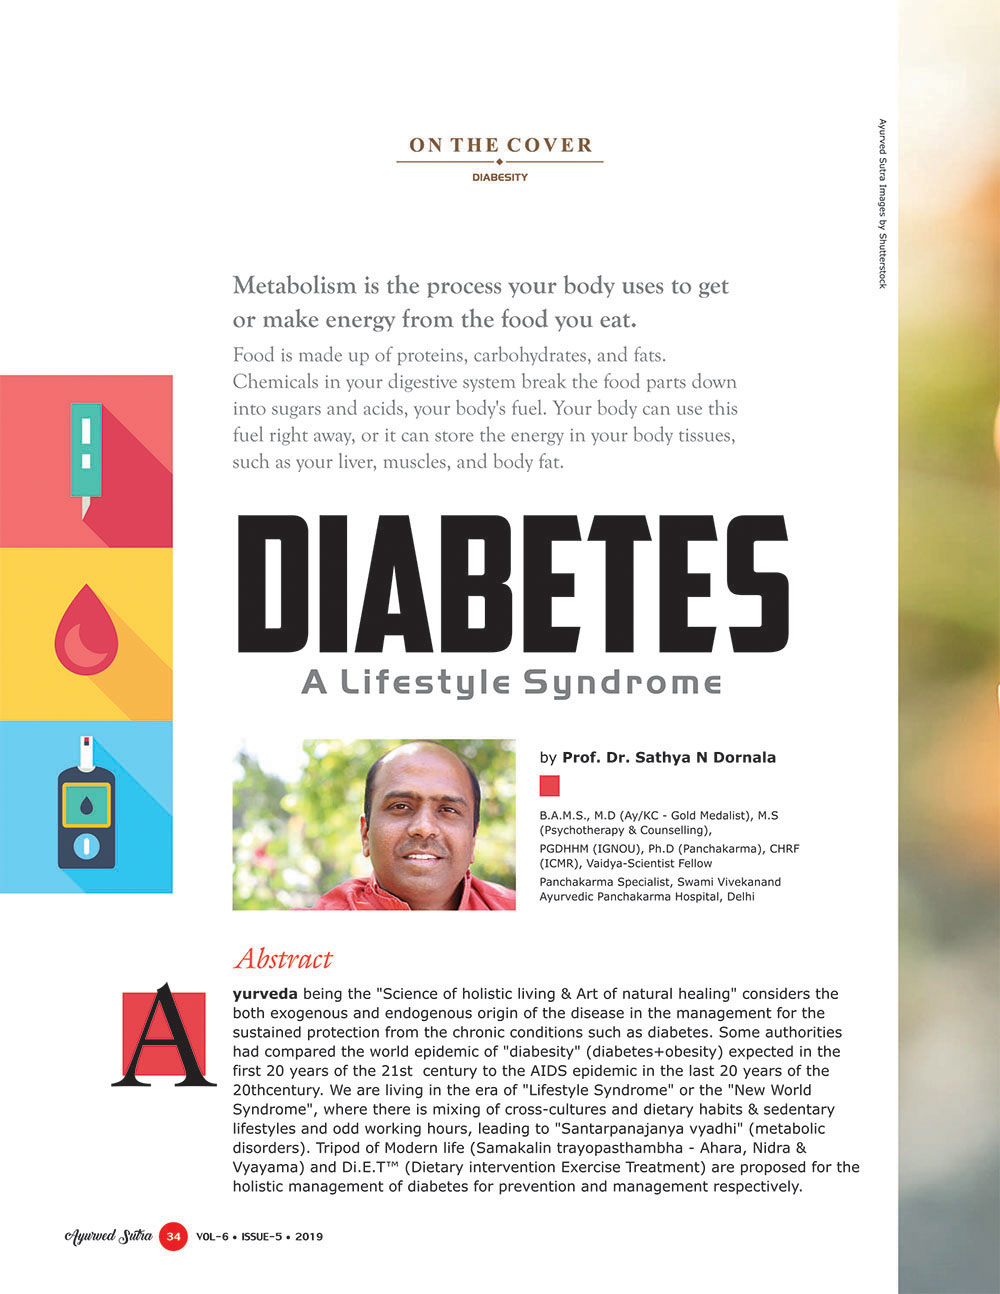 Ayurvedsutra Vol 06 issue 05 36 - Diabetes: A Lifestyle Syndrome